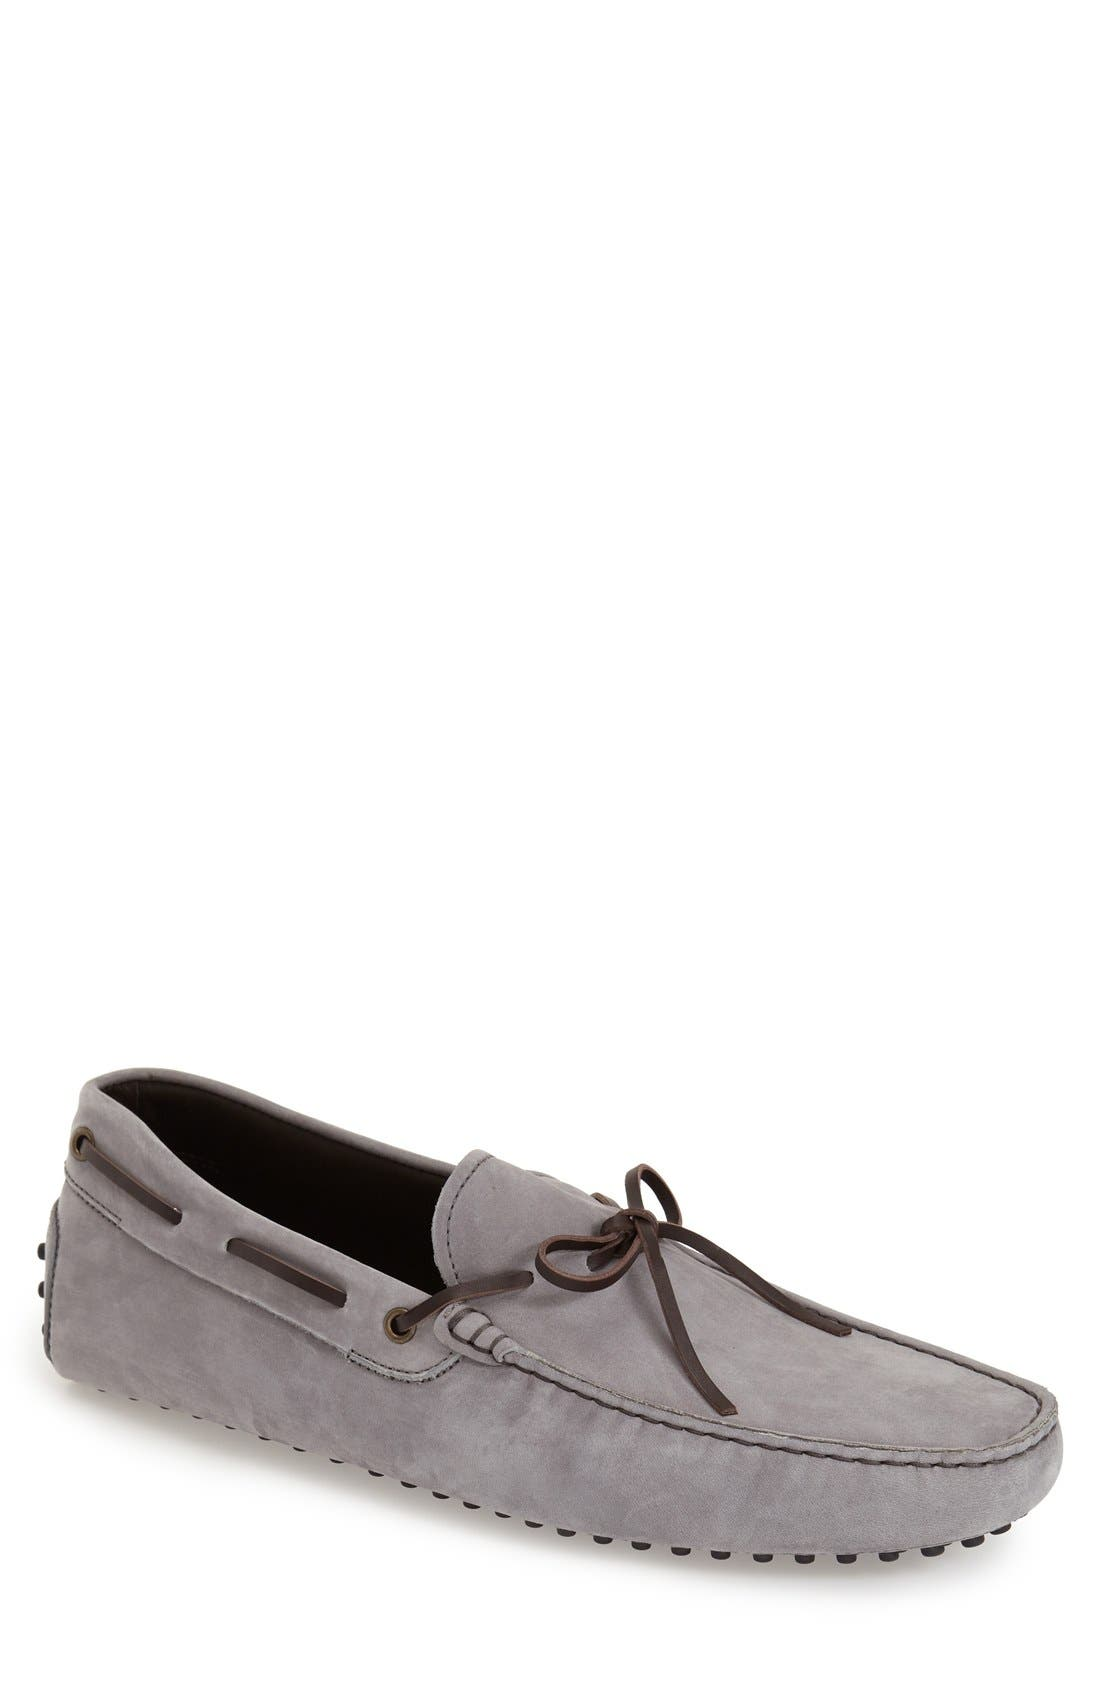 Gommini Tie Front Driving Moccasin,                             Main thumbnail 2, color,